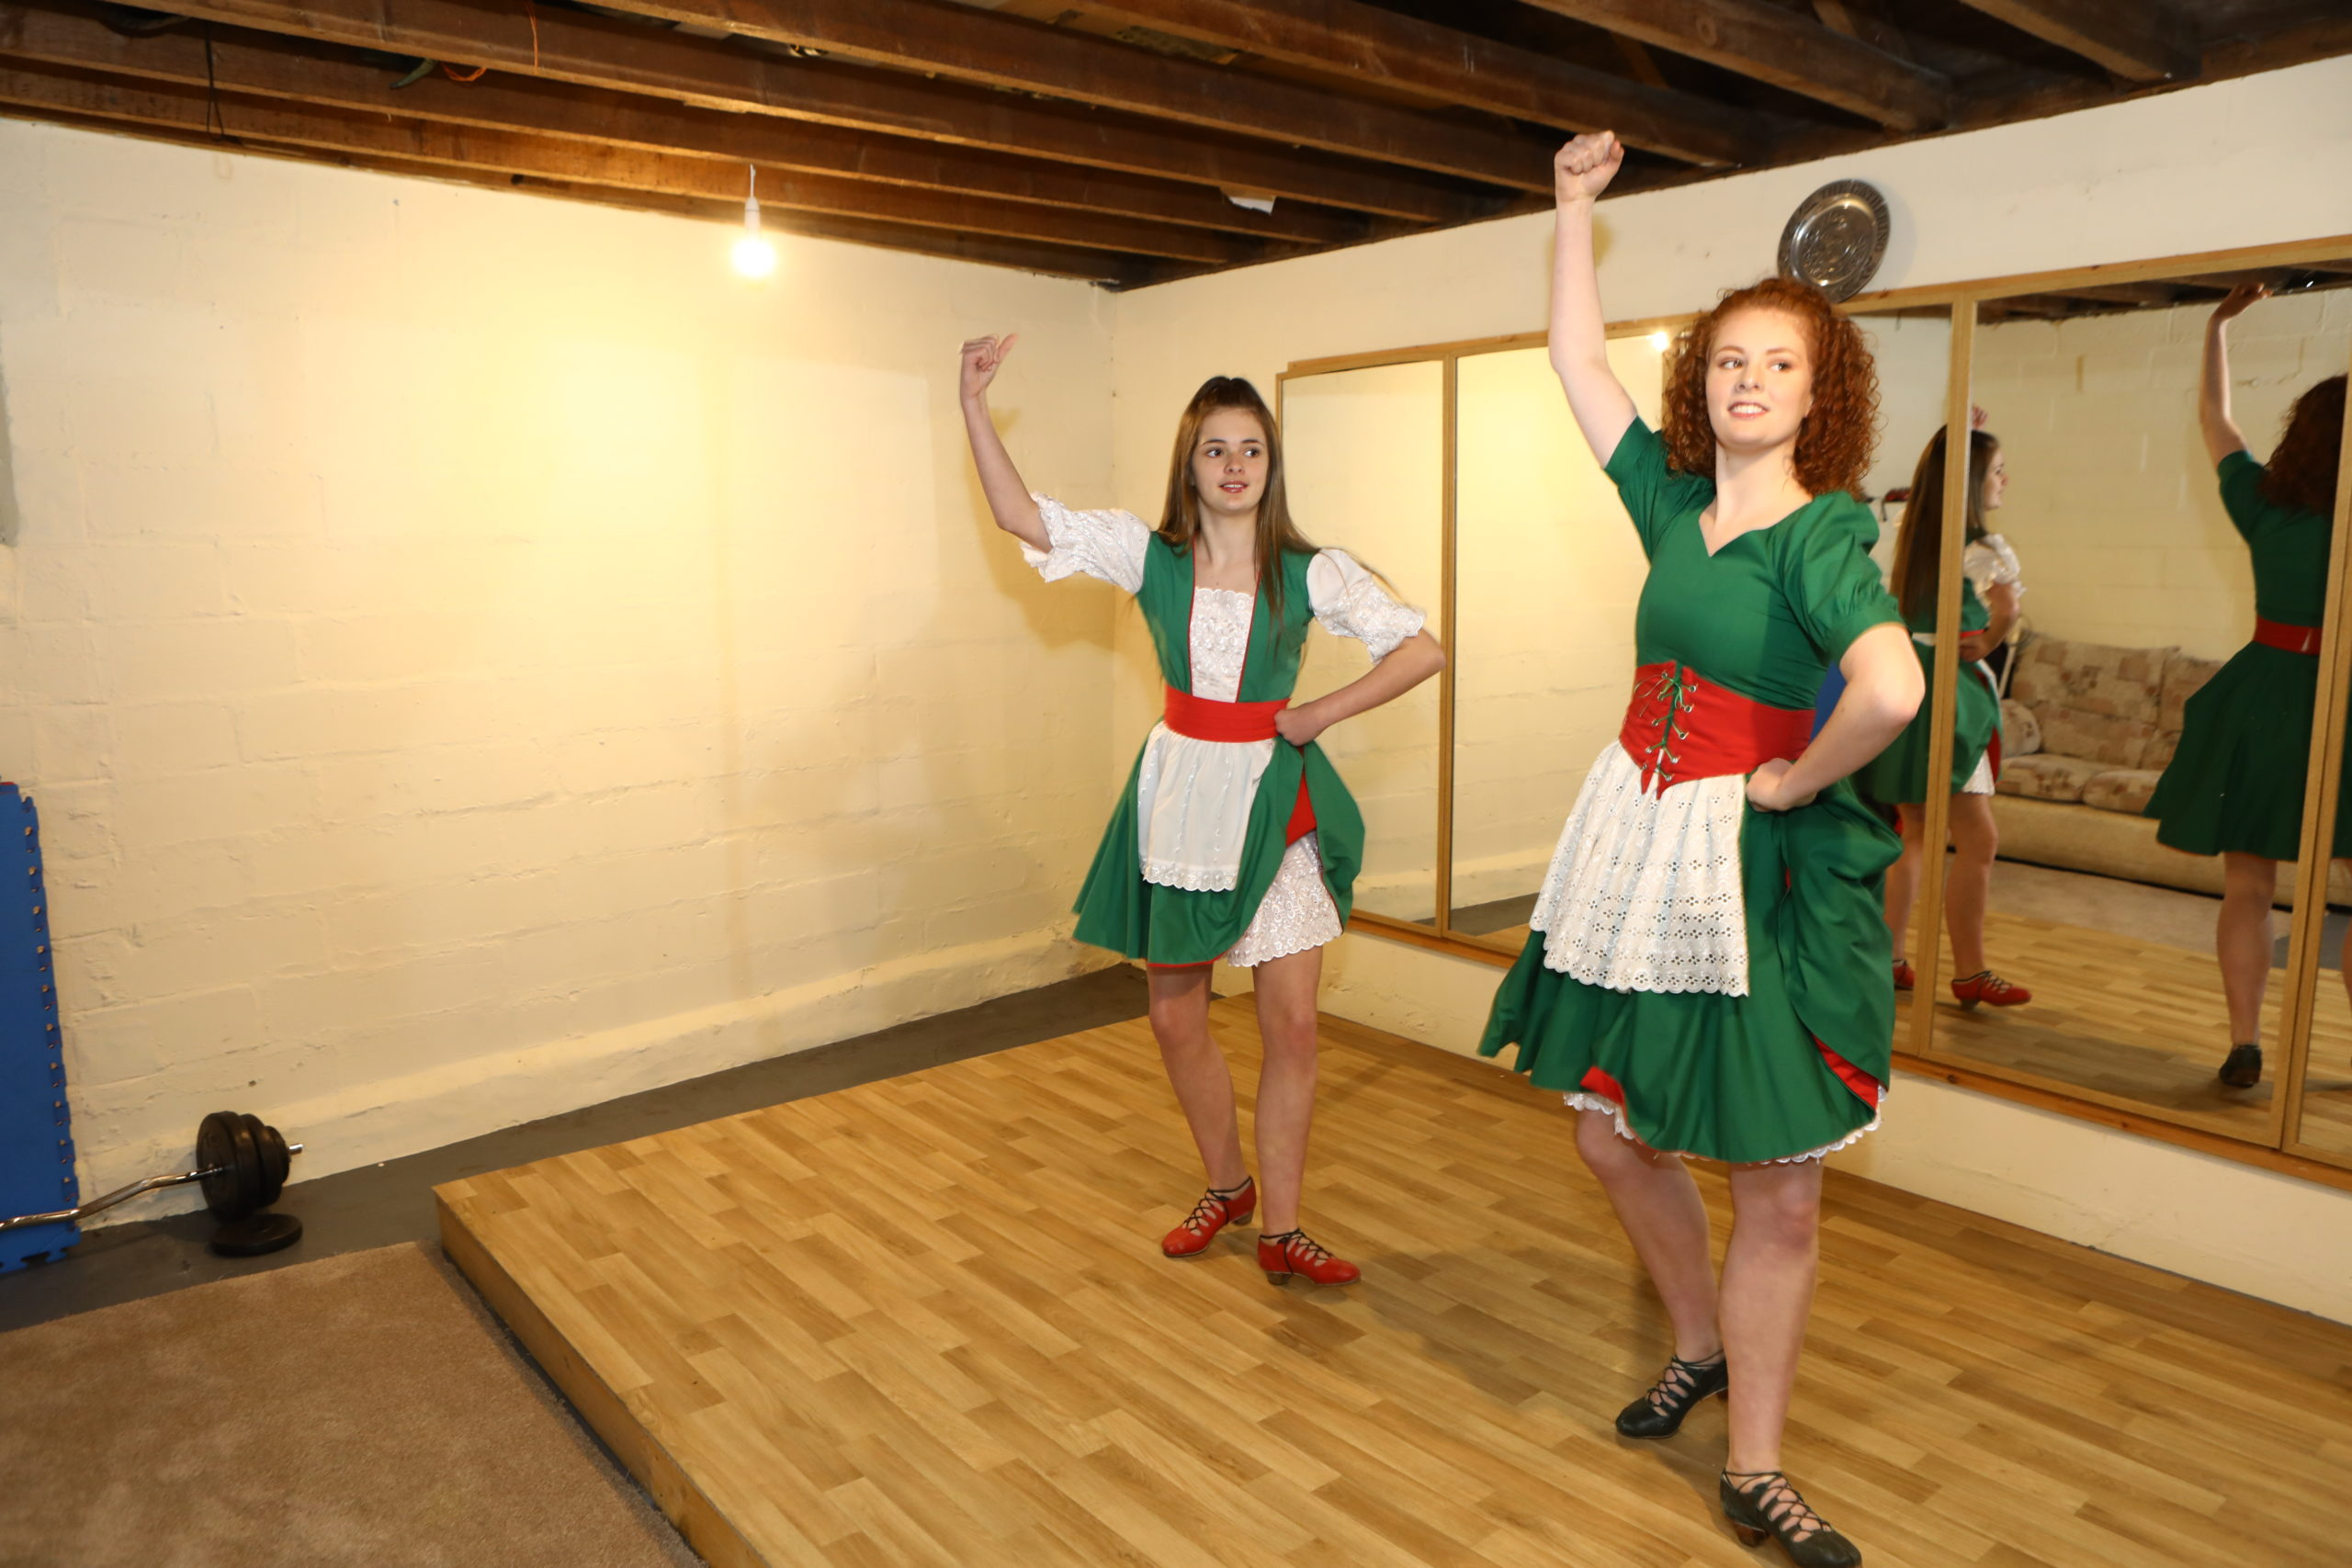 Forfar sisters Harriet, 13, and Olivia Waddell, 17, during their Zoom dance performance.